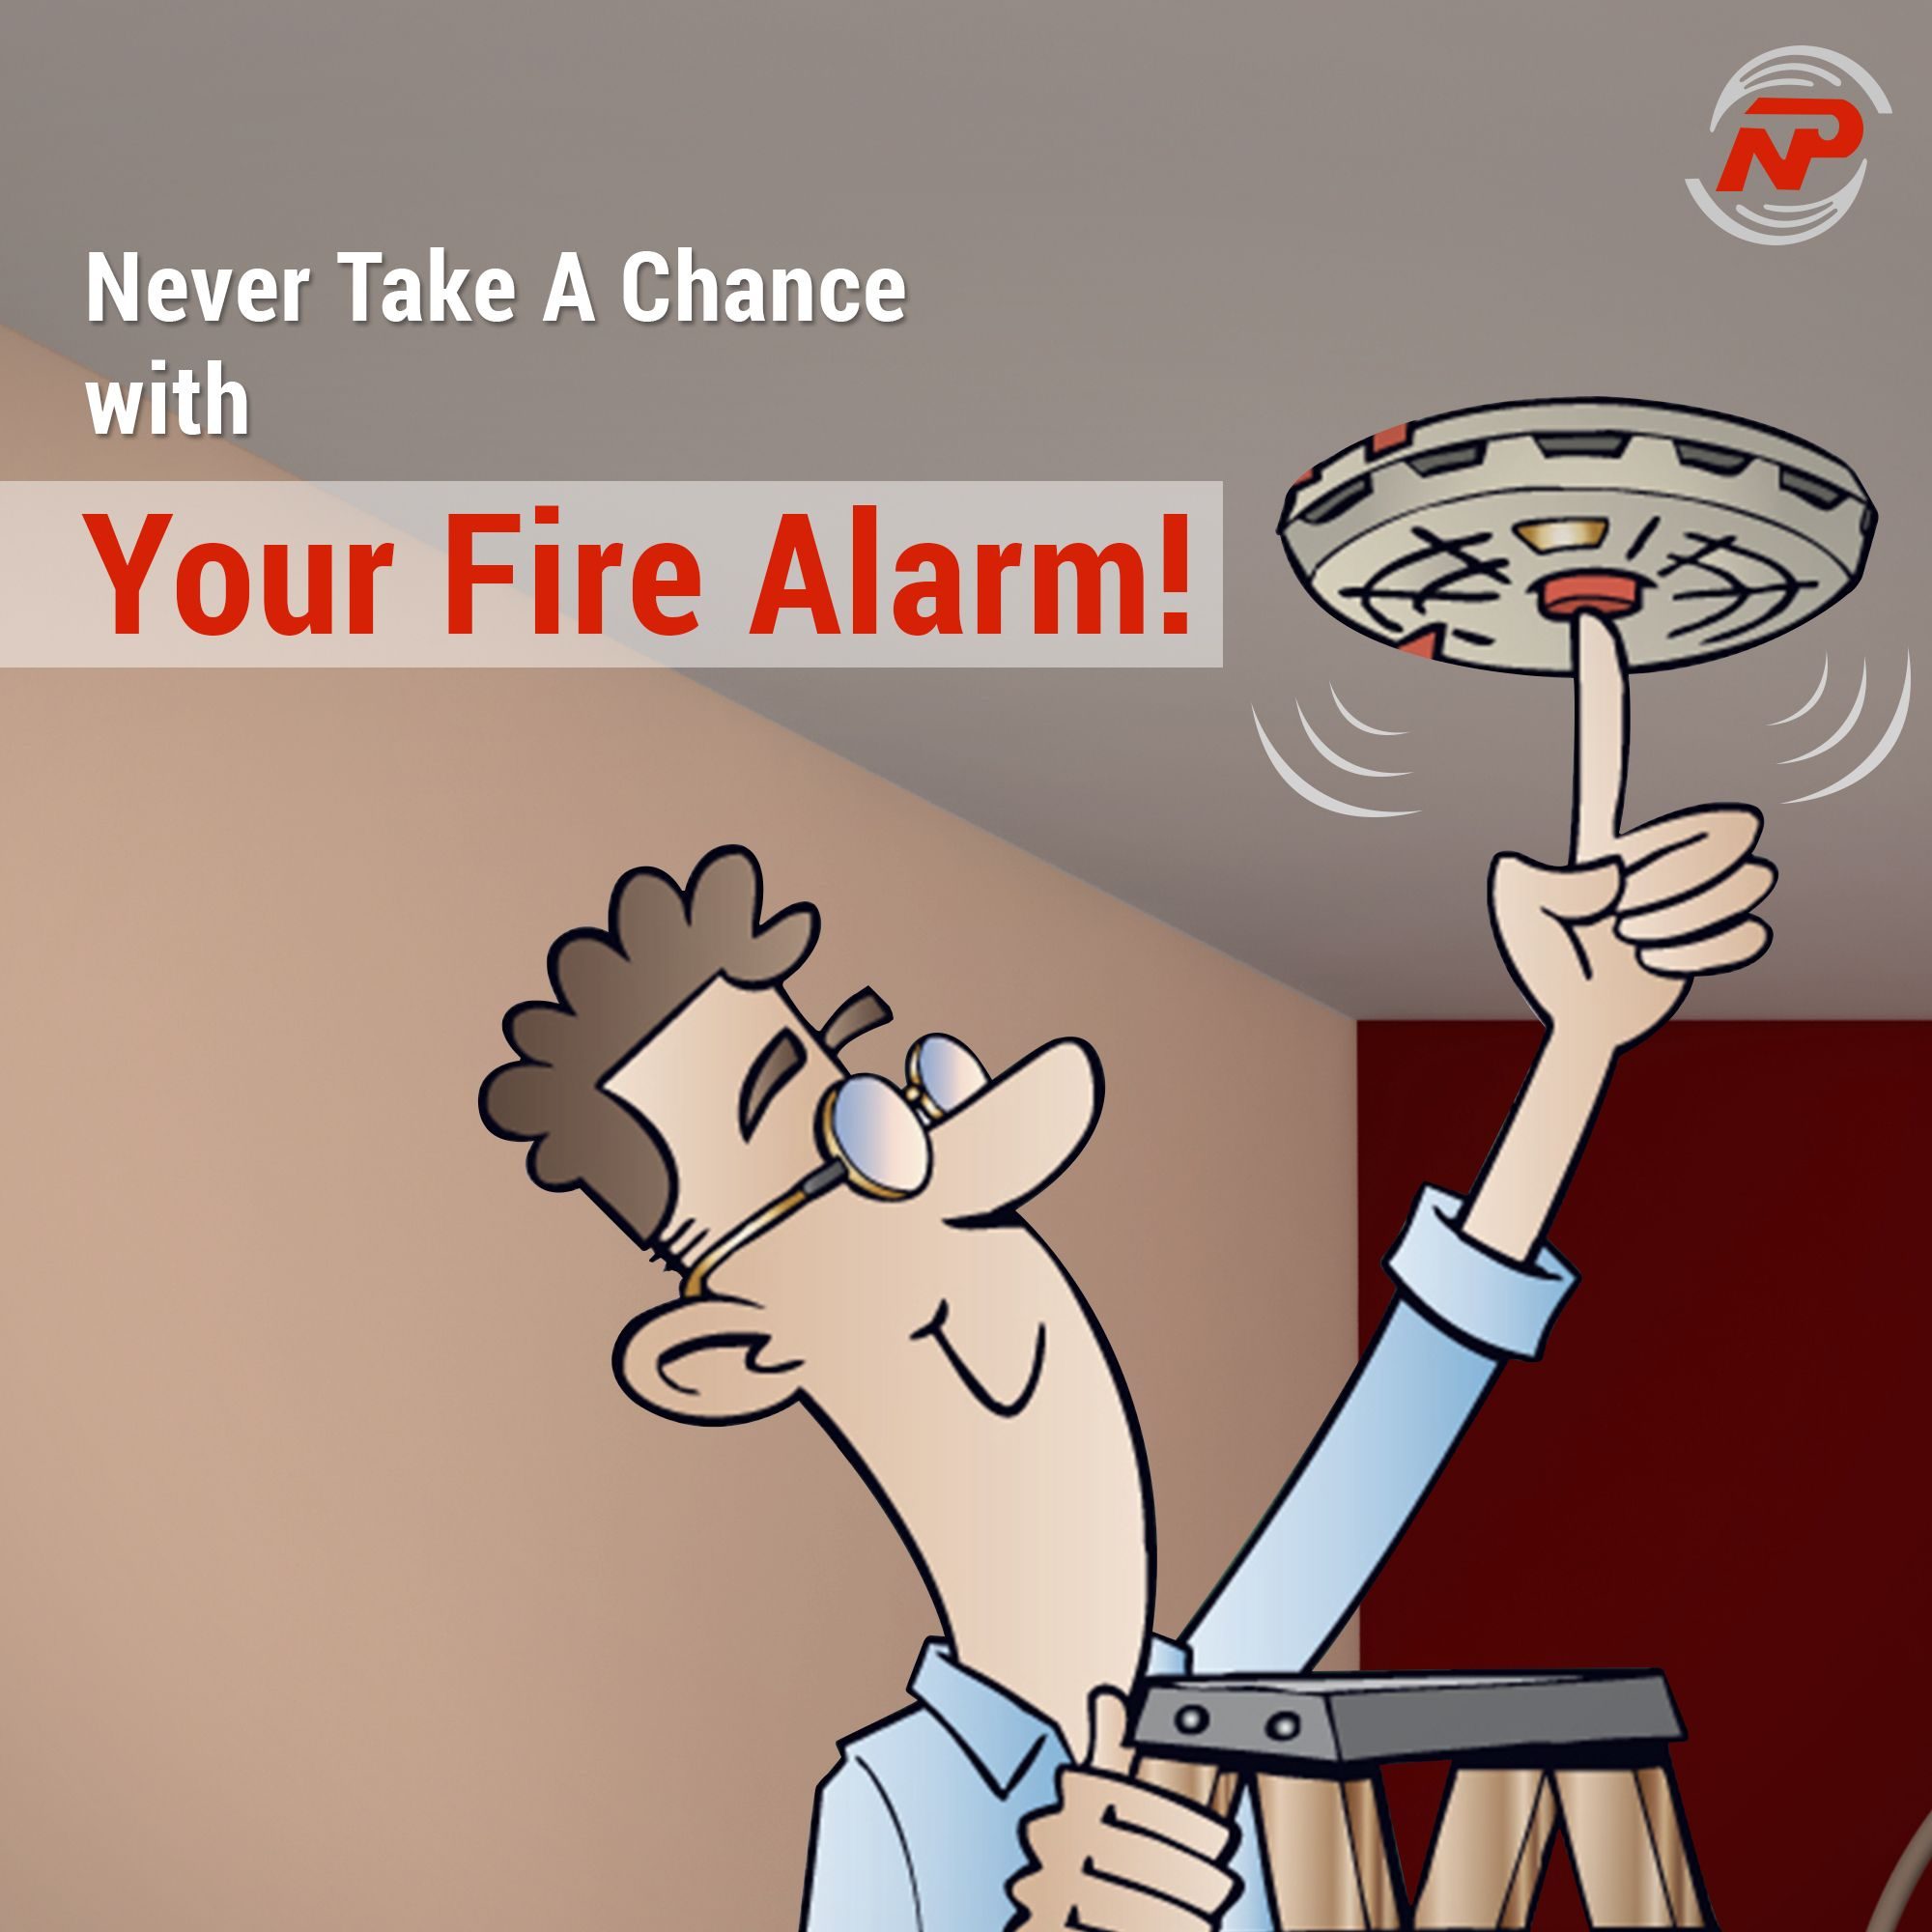 Firealarms Are Rarely Used Thankfully But The Alarm System Must Be At The Ready At All Times That Means Regular Fire Alarm Fire Alarm System Alarm System